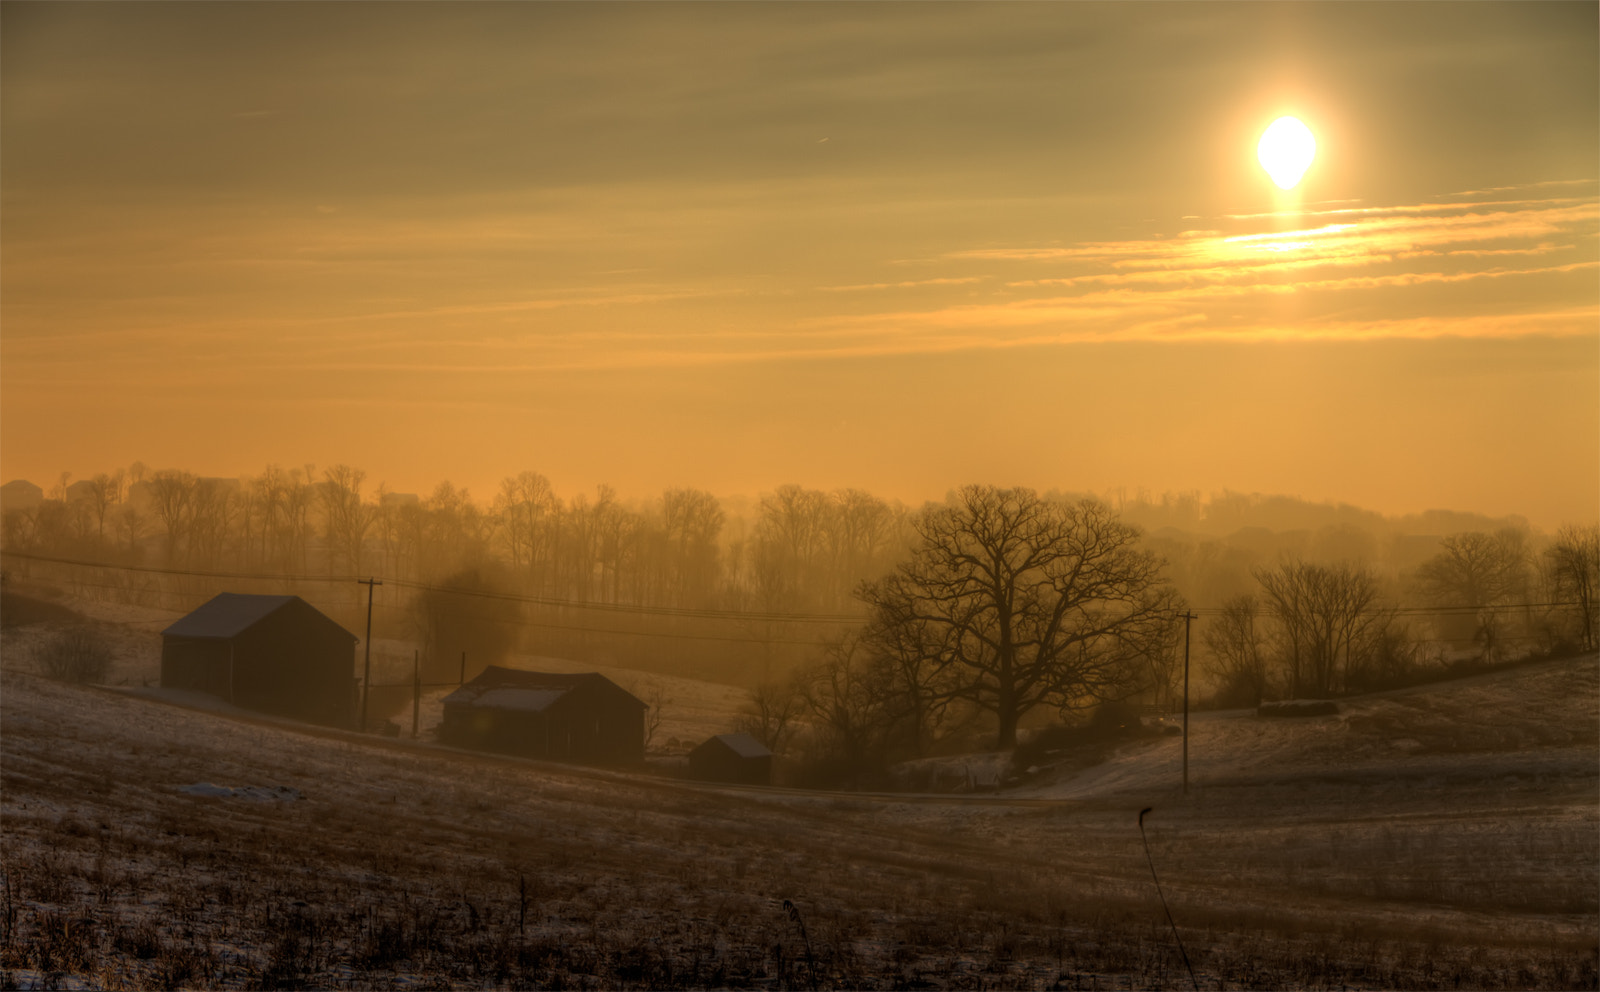 Photograph Sunrise on Sunday by Rich McPeek on 500px